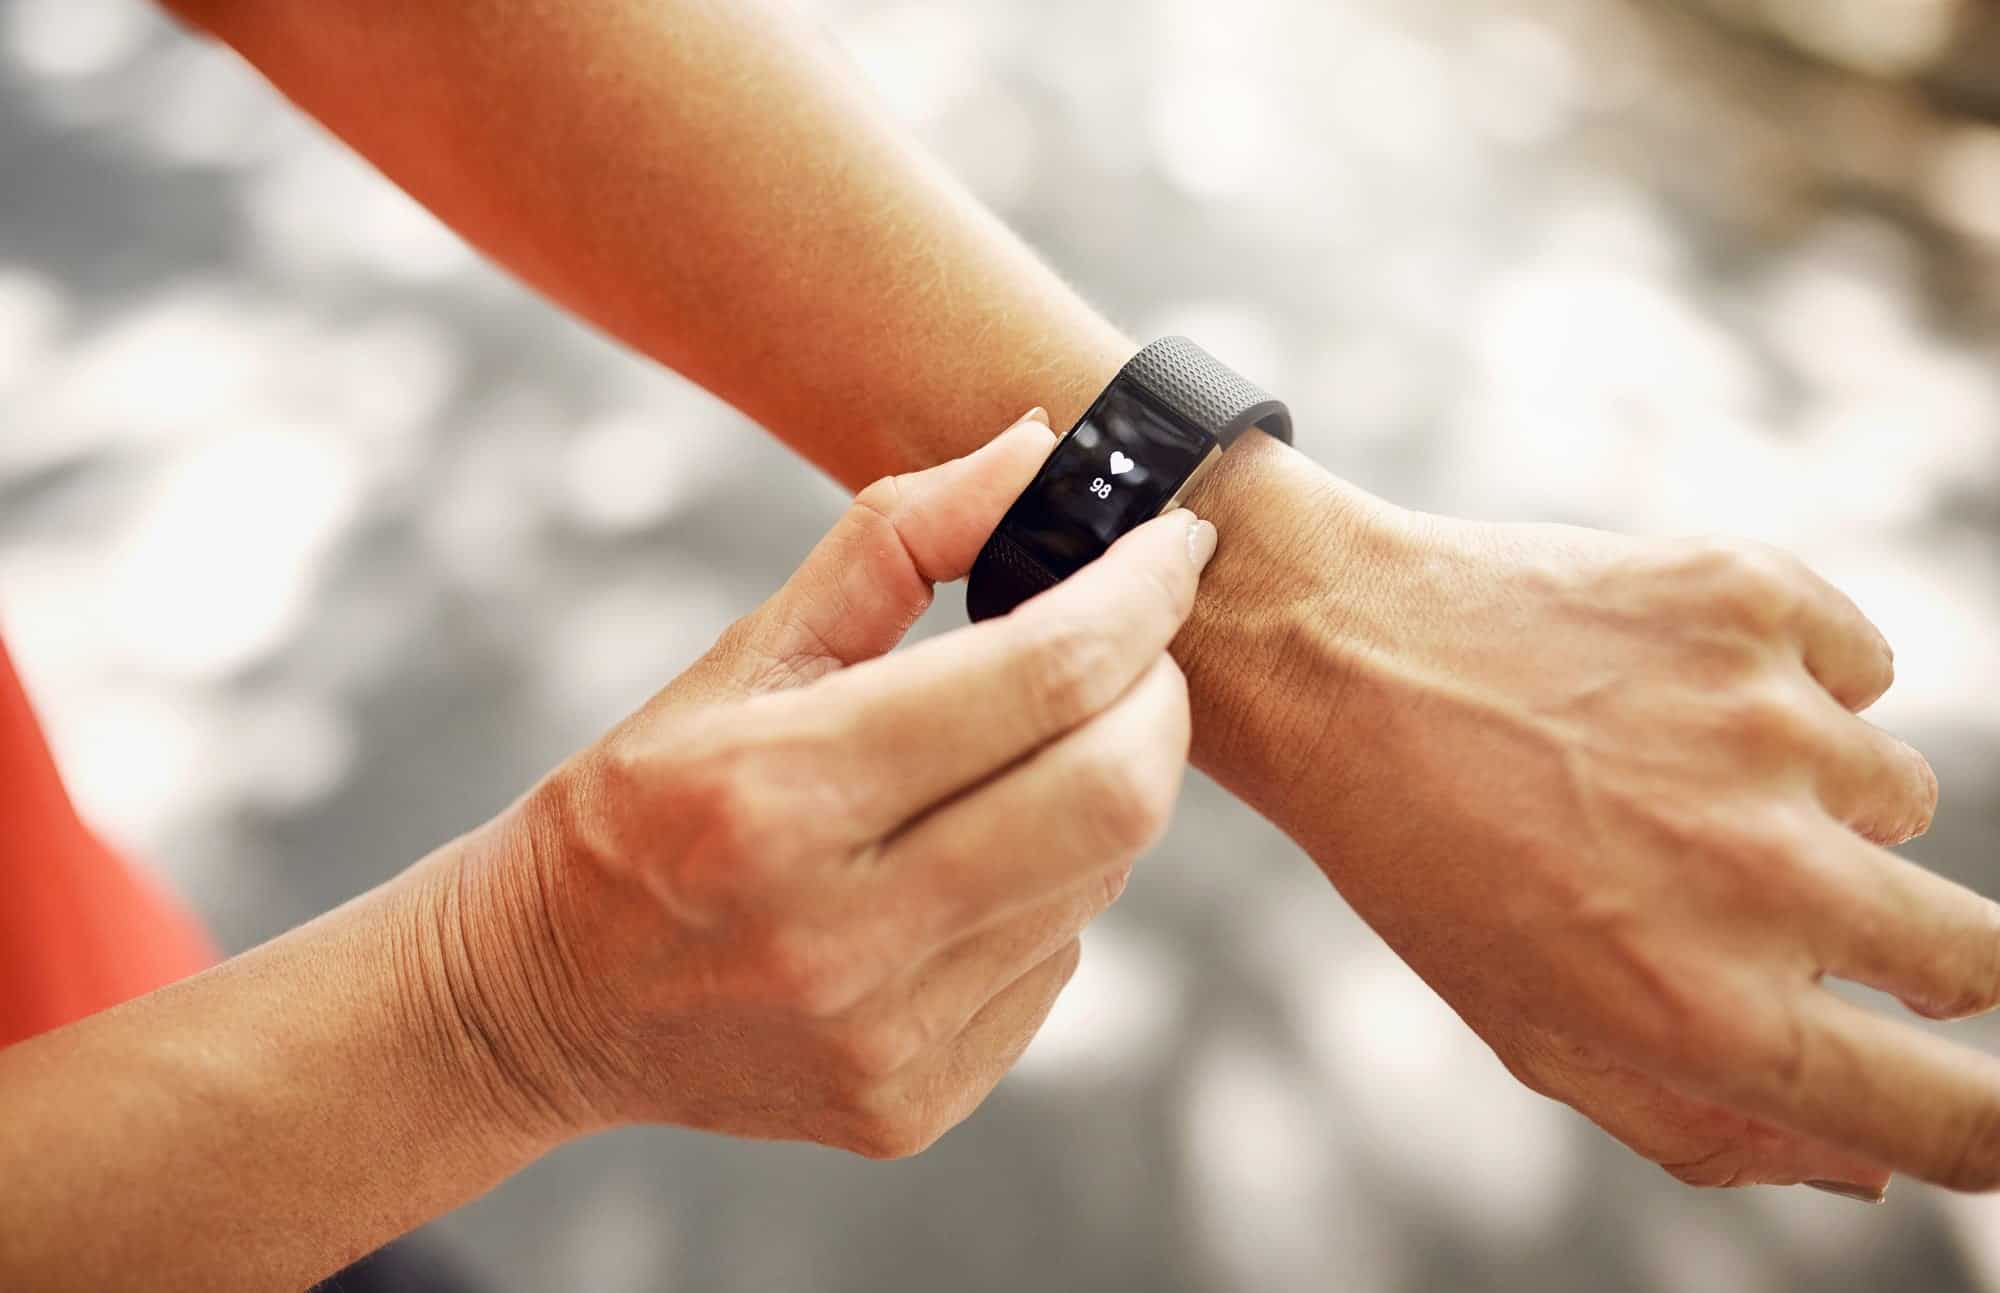 Google's acquisition of Fitbit